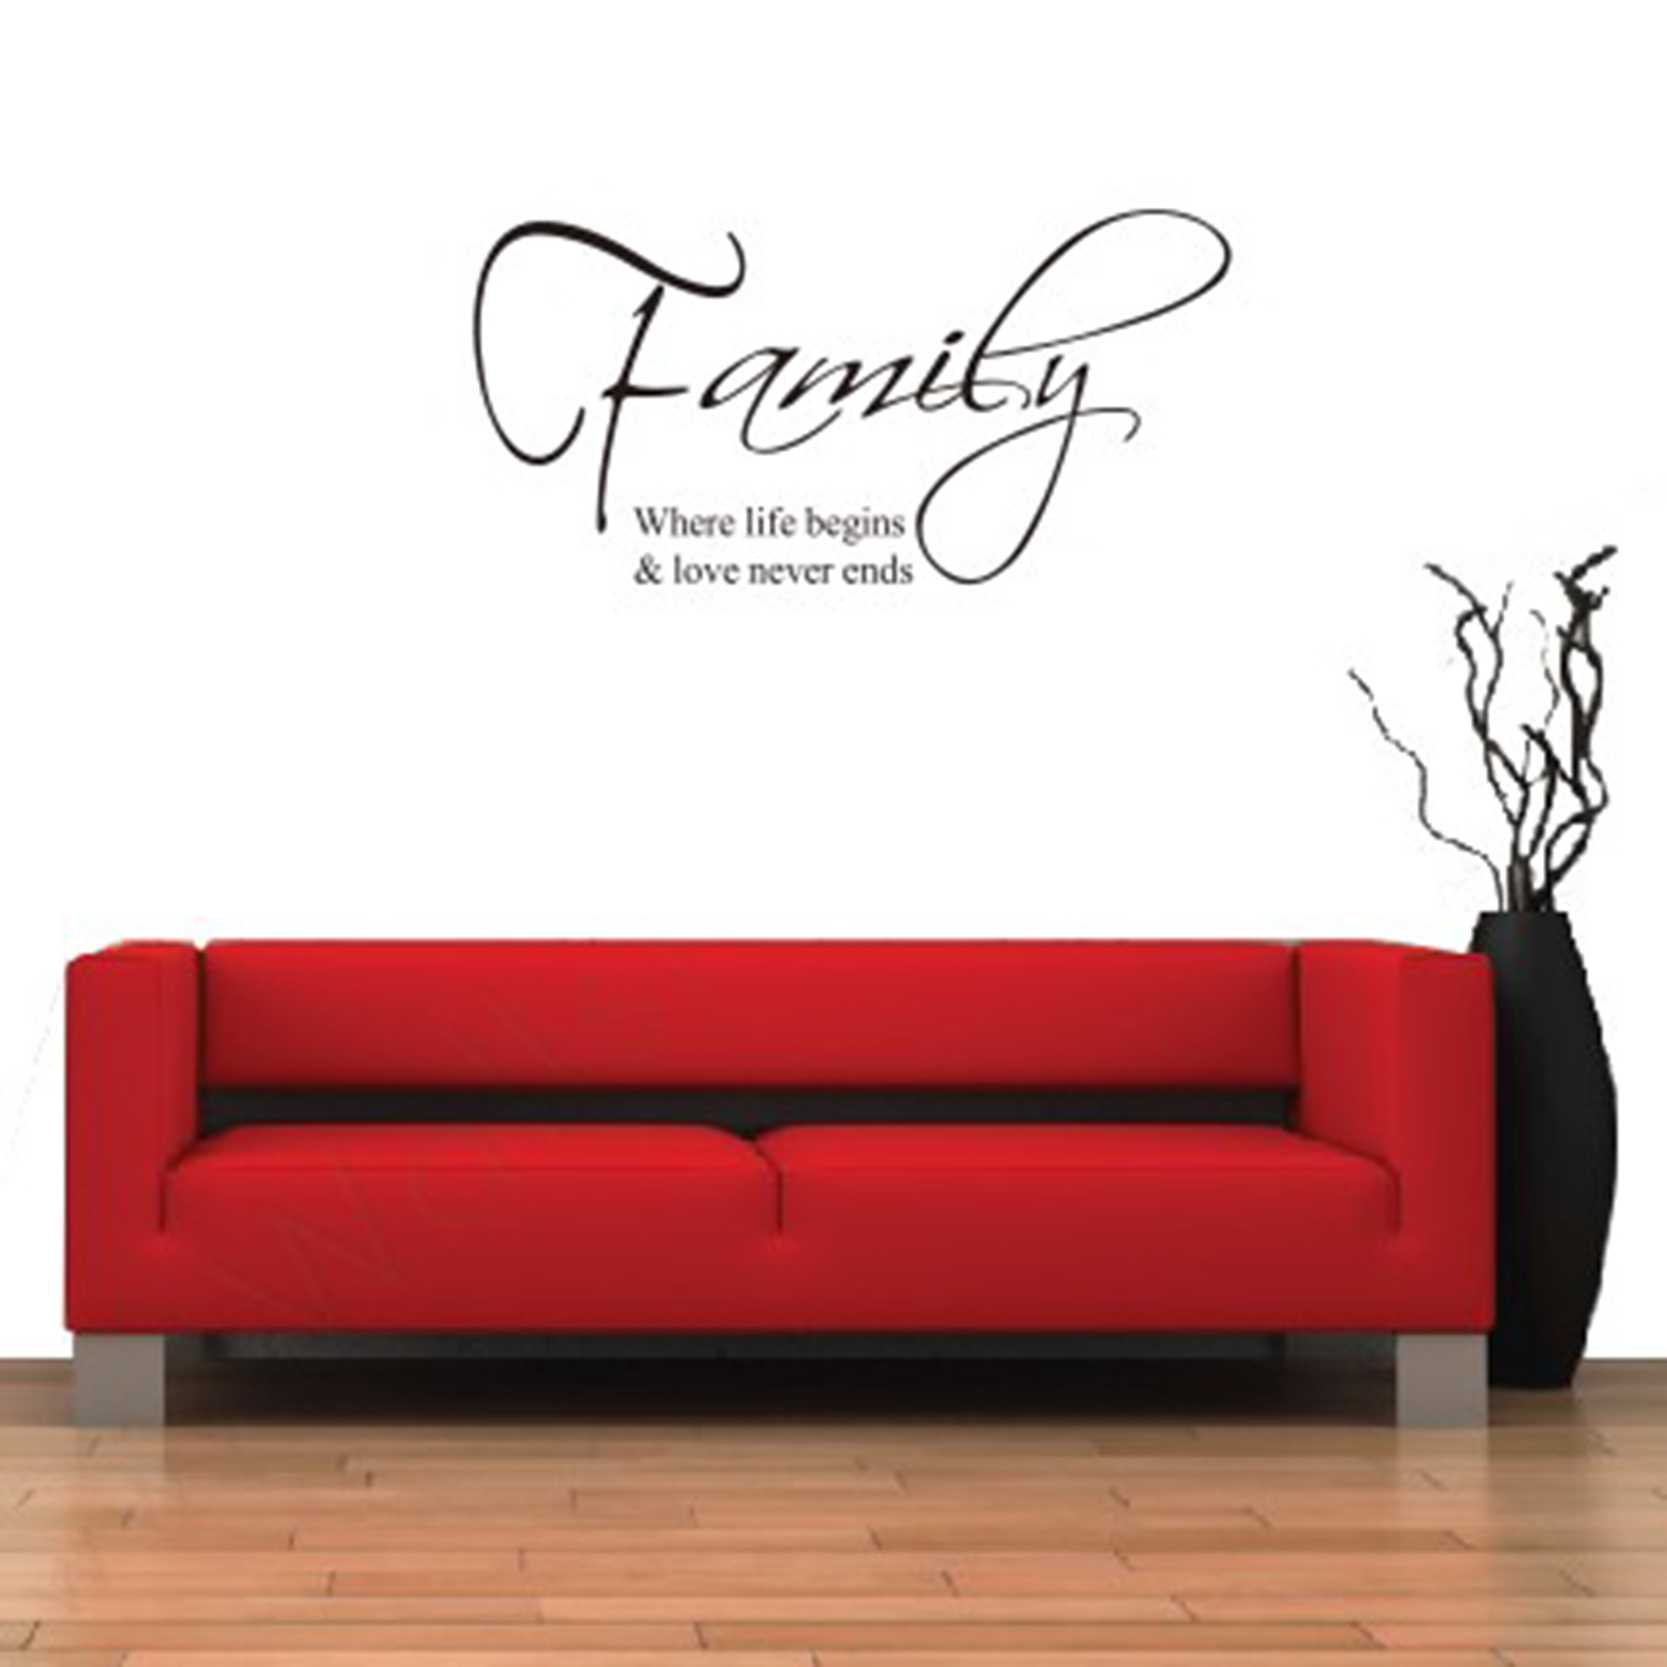 compare prices on family english online shopping buy low price 2016 family english quote wallsticker decoration home removable decor pvc waterproof wall decal quote sticker